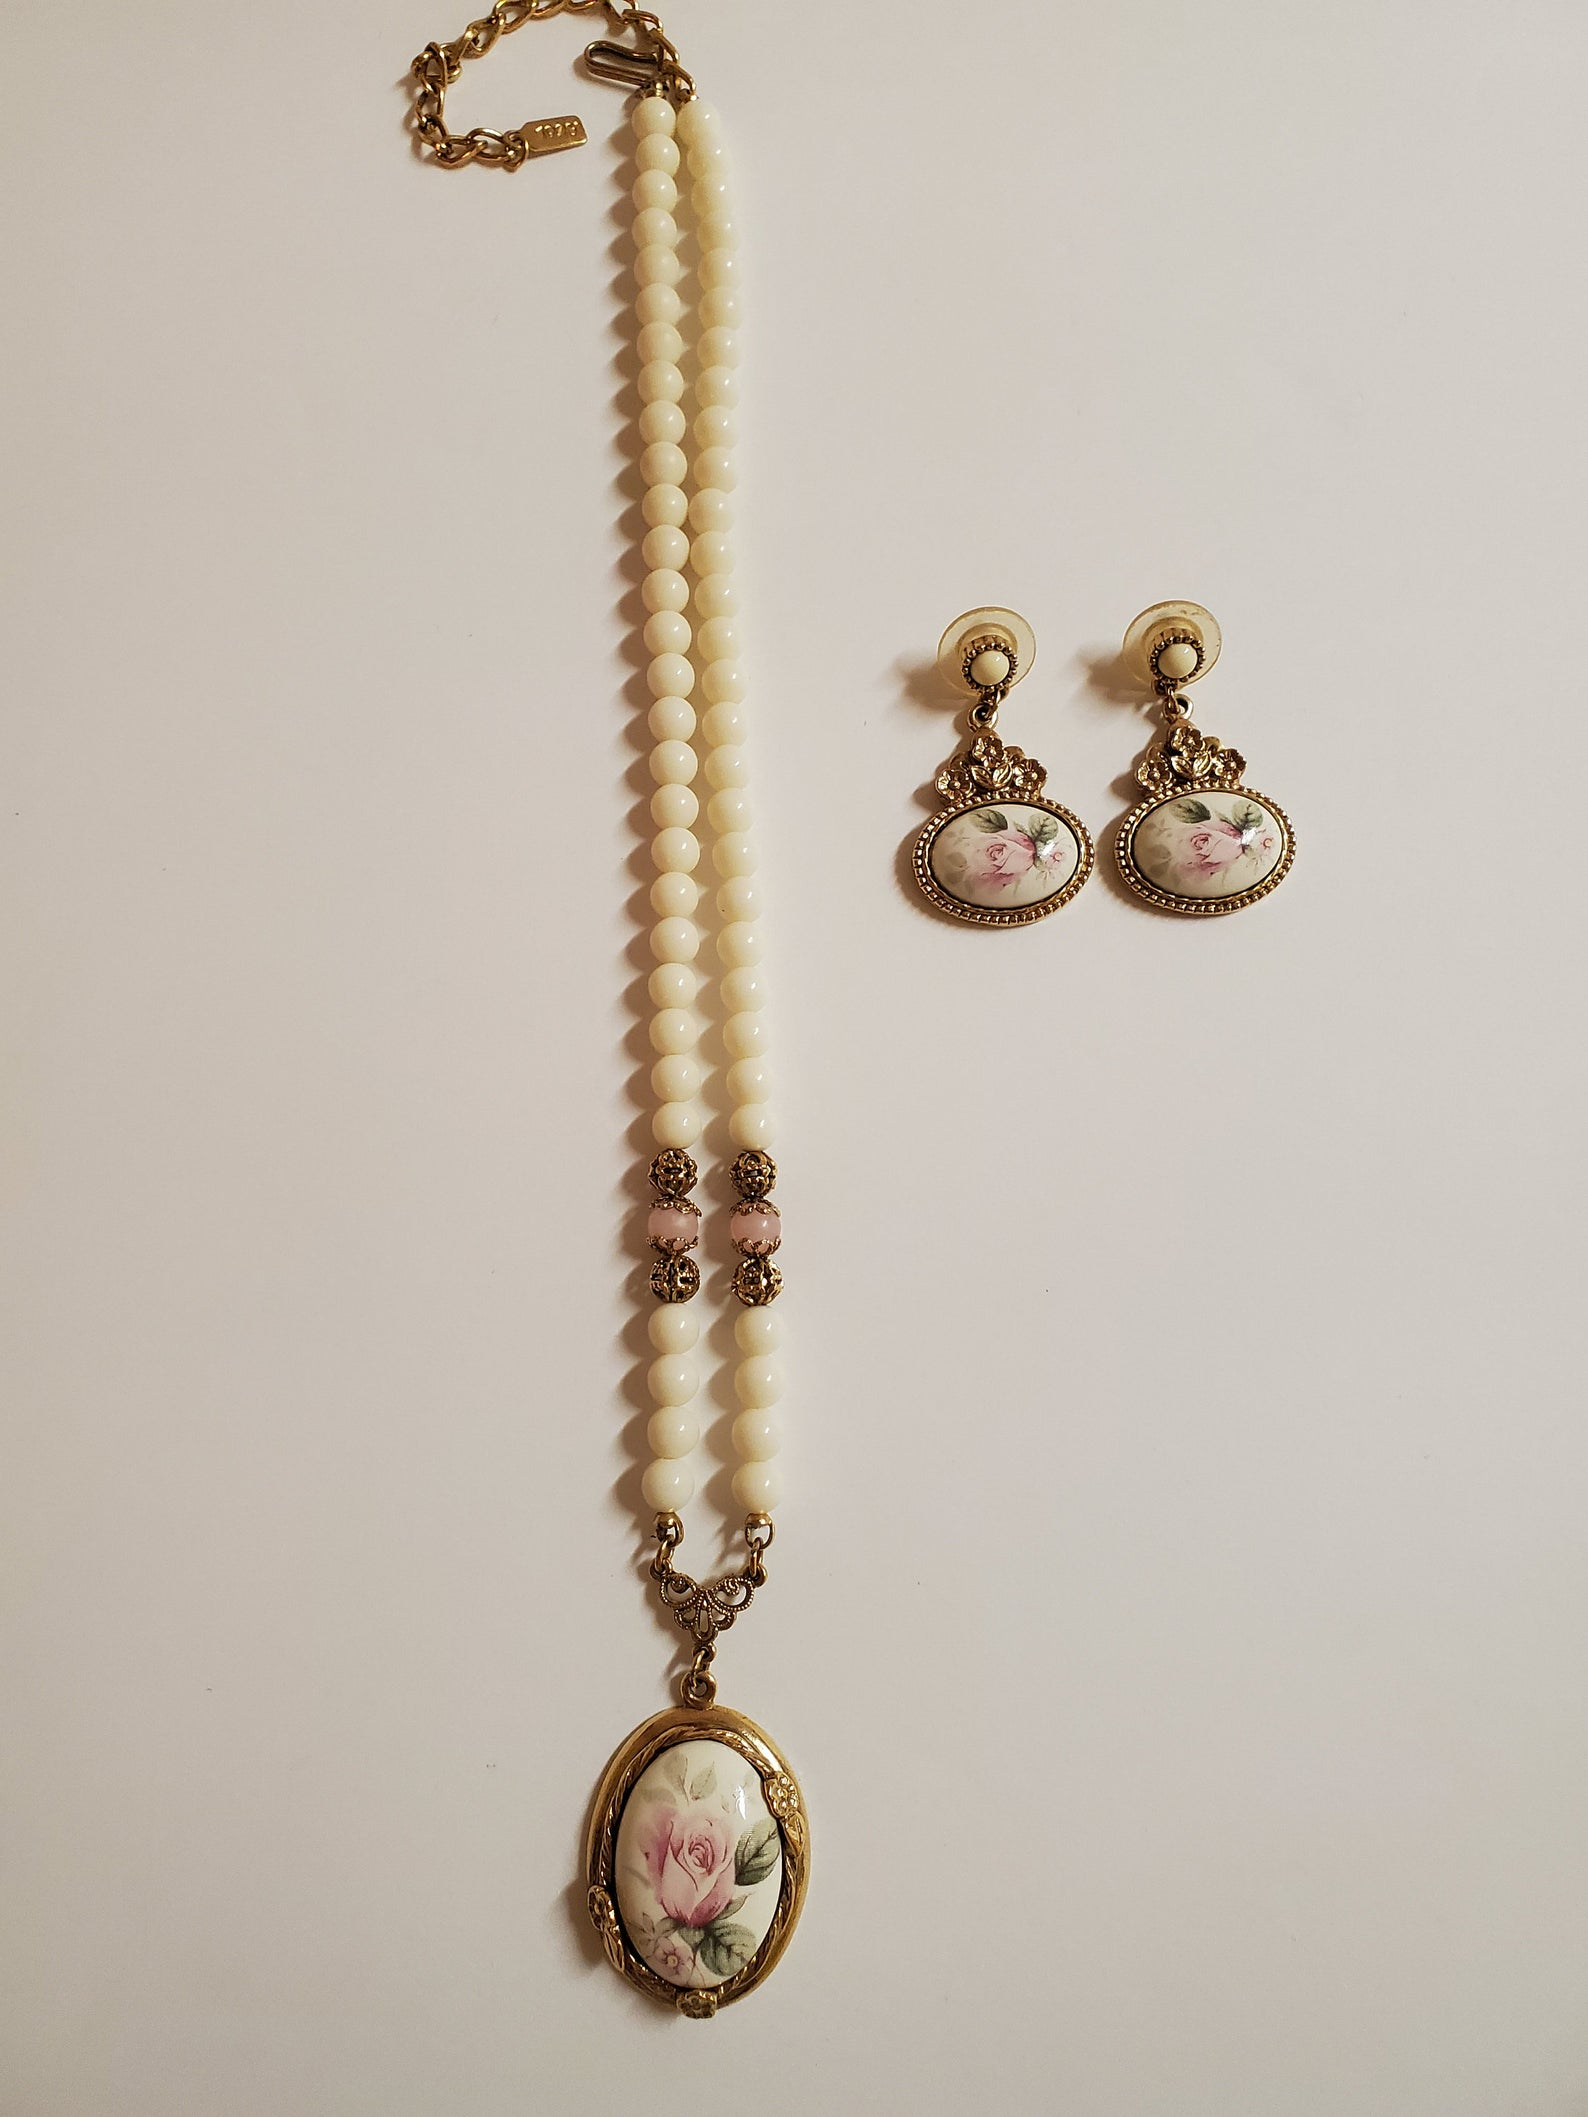 Necklace and earring set. Both are accented with pearls but the main focus is porcelain paintings of pink roses.